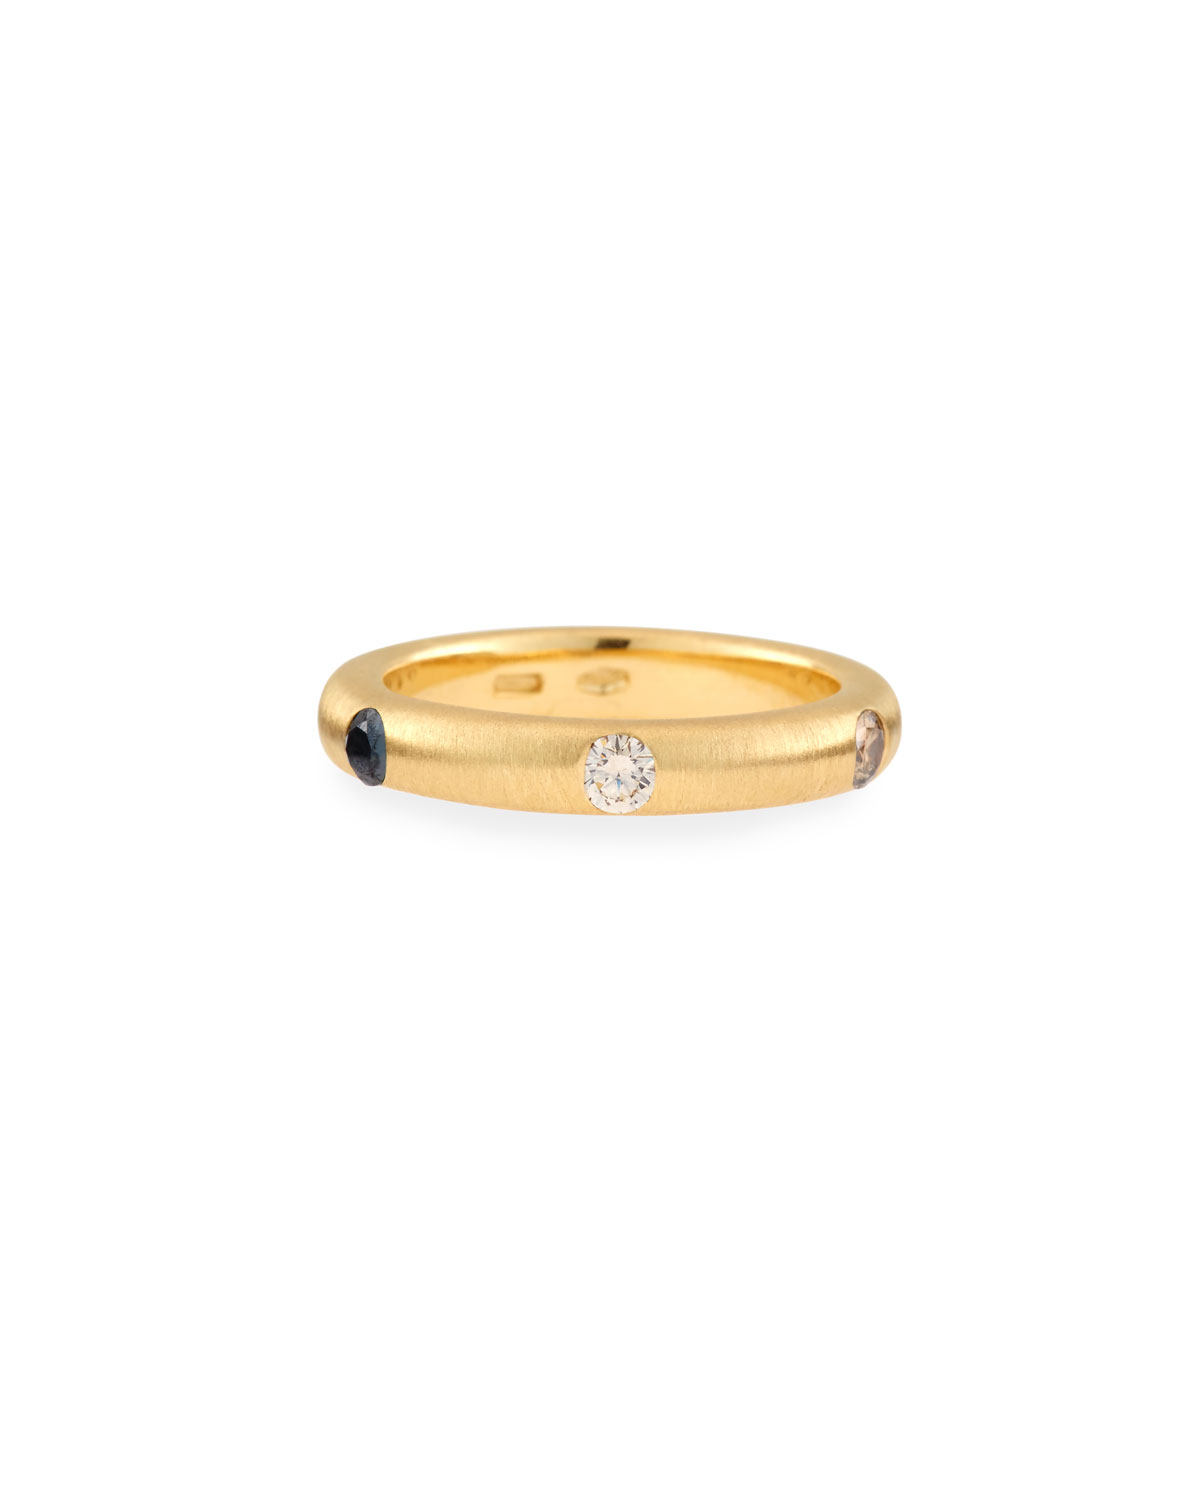 Adolfo Courrier 18K Yellow Gold Ring with Brown & Black Diamonds, Size 6.75